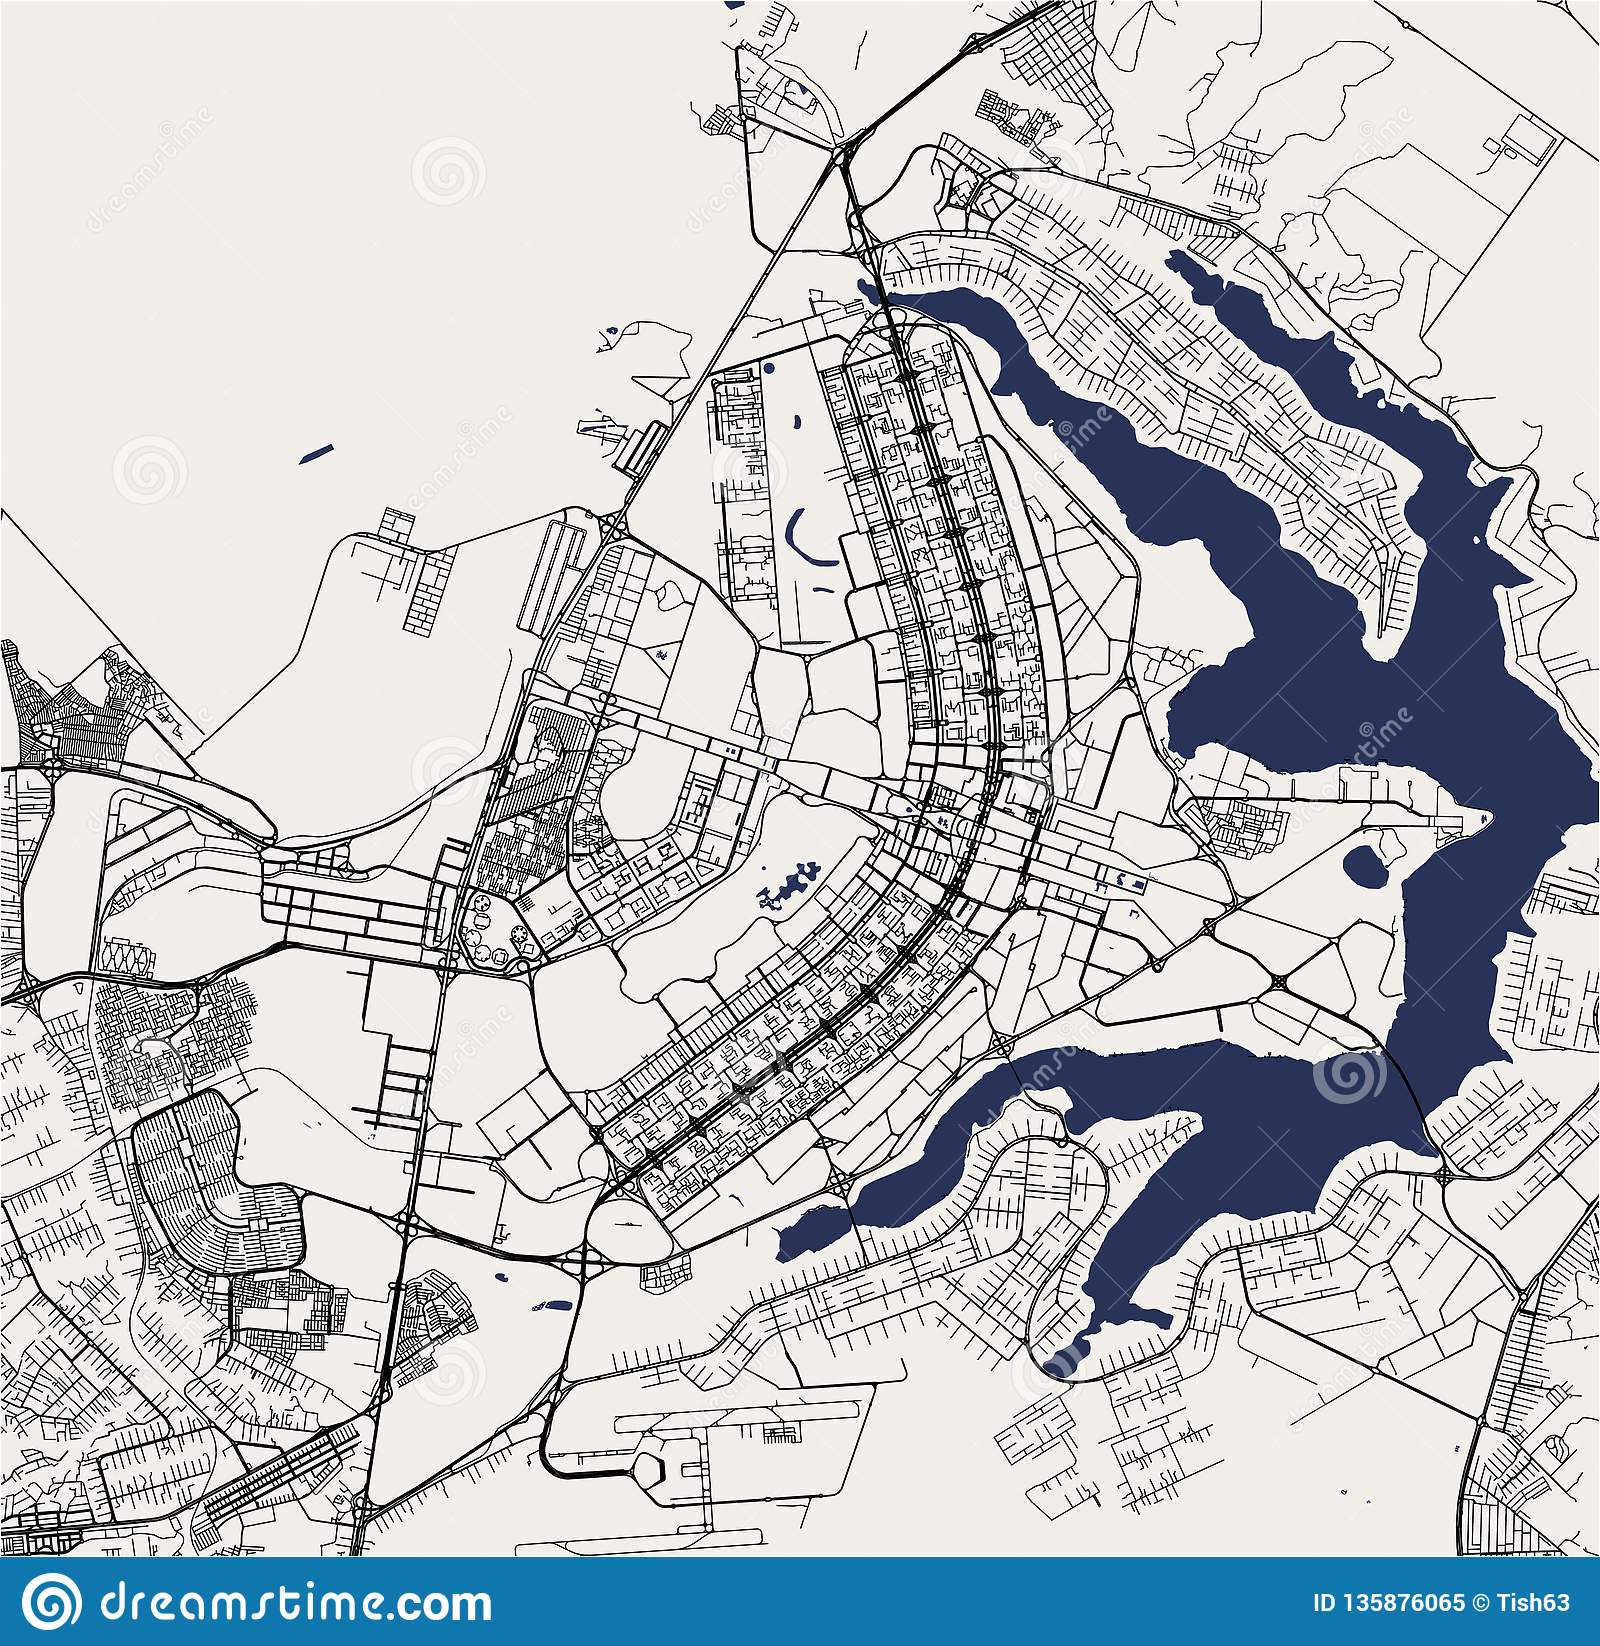 Picture of: Map Of The City Of Brasilia Capital Of Brazil Stock Illustration Illustration Of Highway Planing 135876065